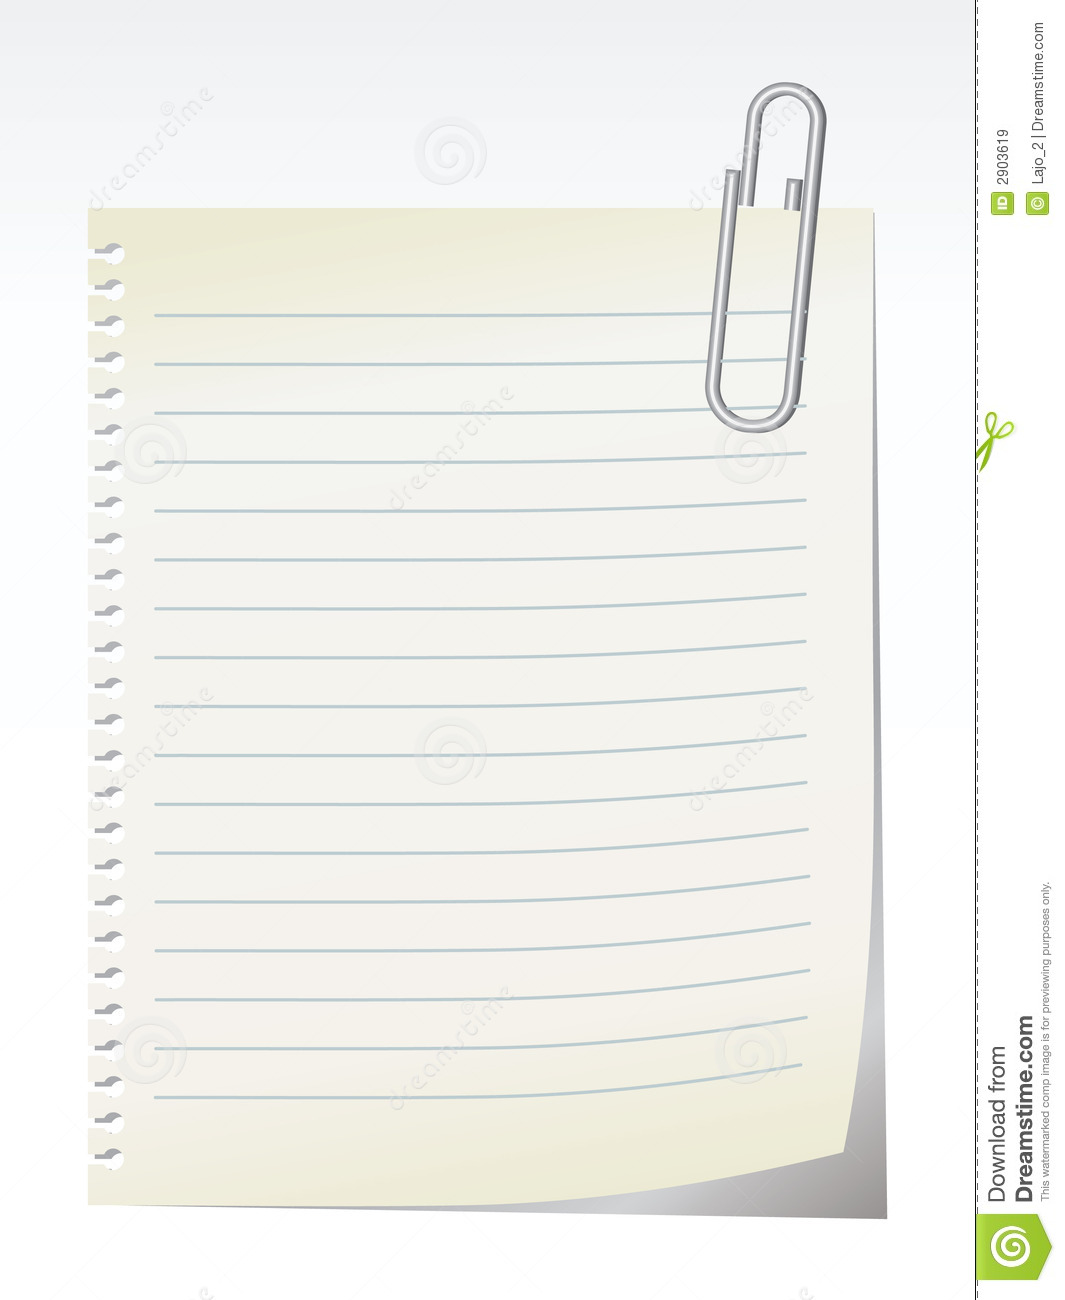 Lined blank note breaked away from the notebook - vector.